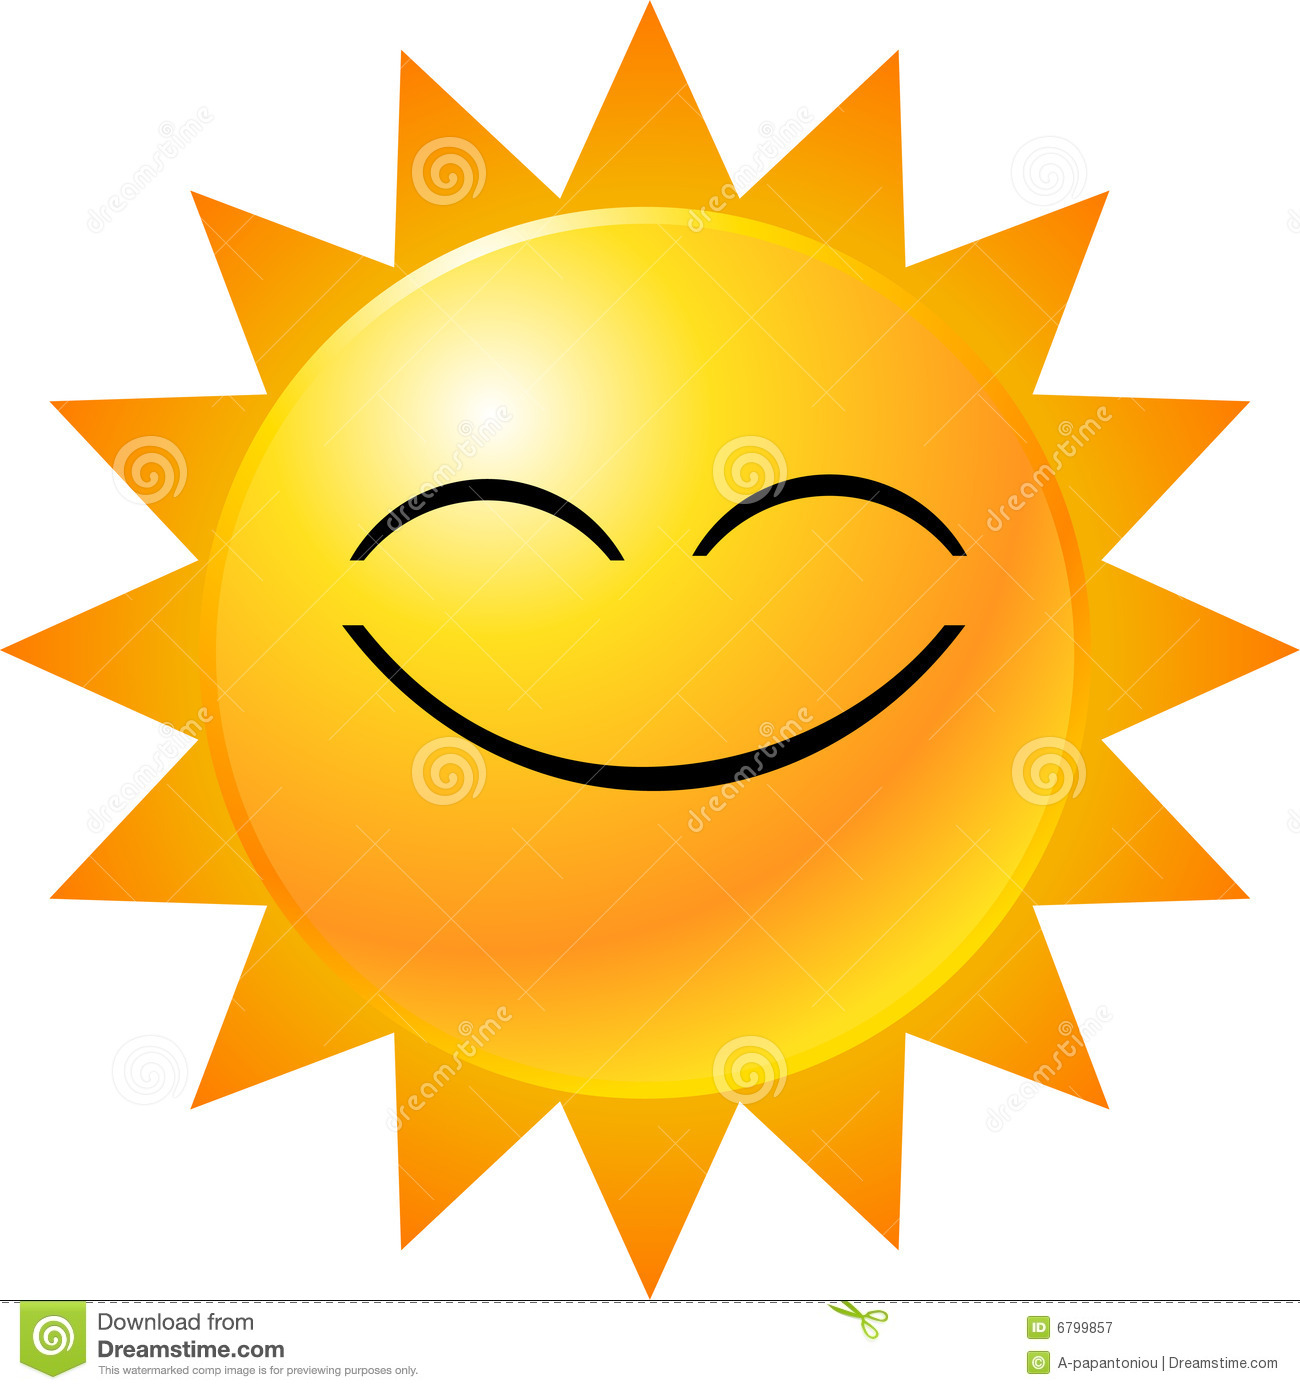 Sunny Clipart & Sunny Clip Art Images.